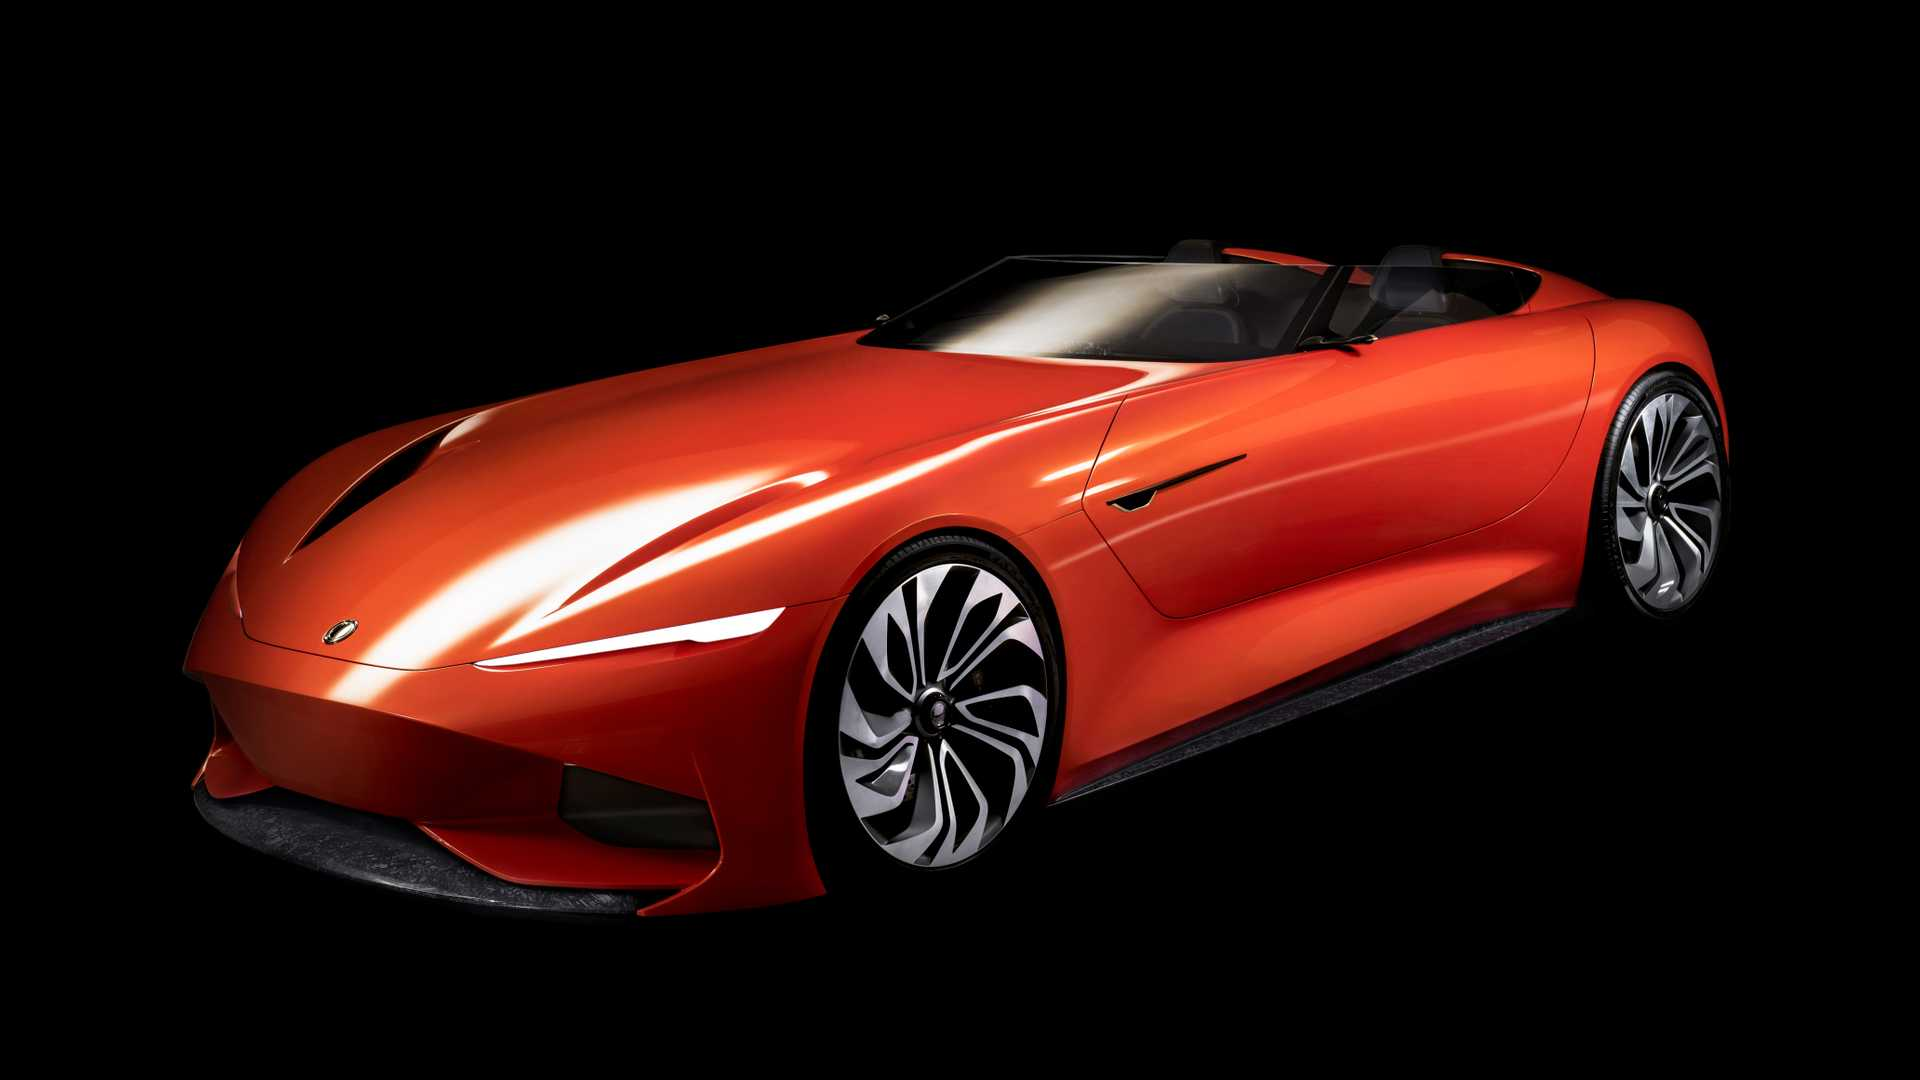 Californian carmaker Karma Automotive will attend the Pebble Beach Concours d'Elegance with the SC1 Vision Concept, an all-electric speedster and design study.